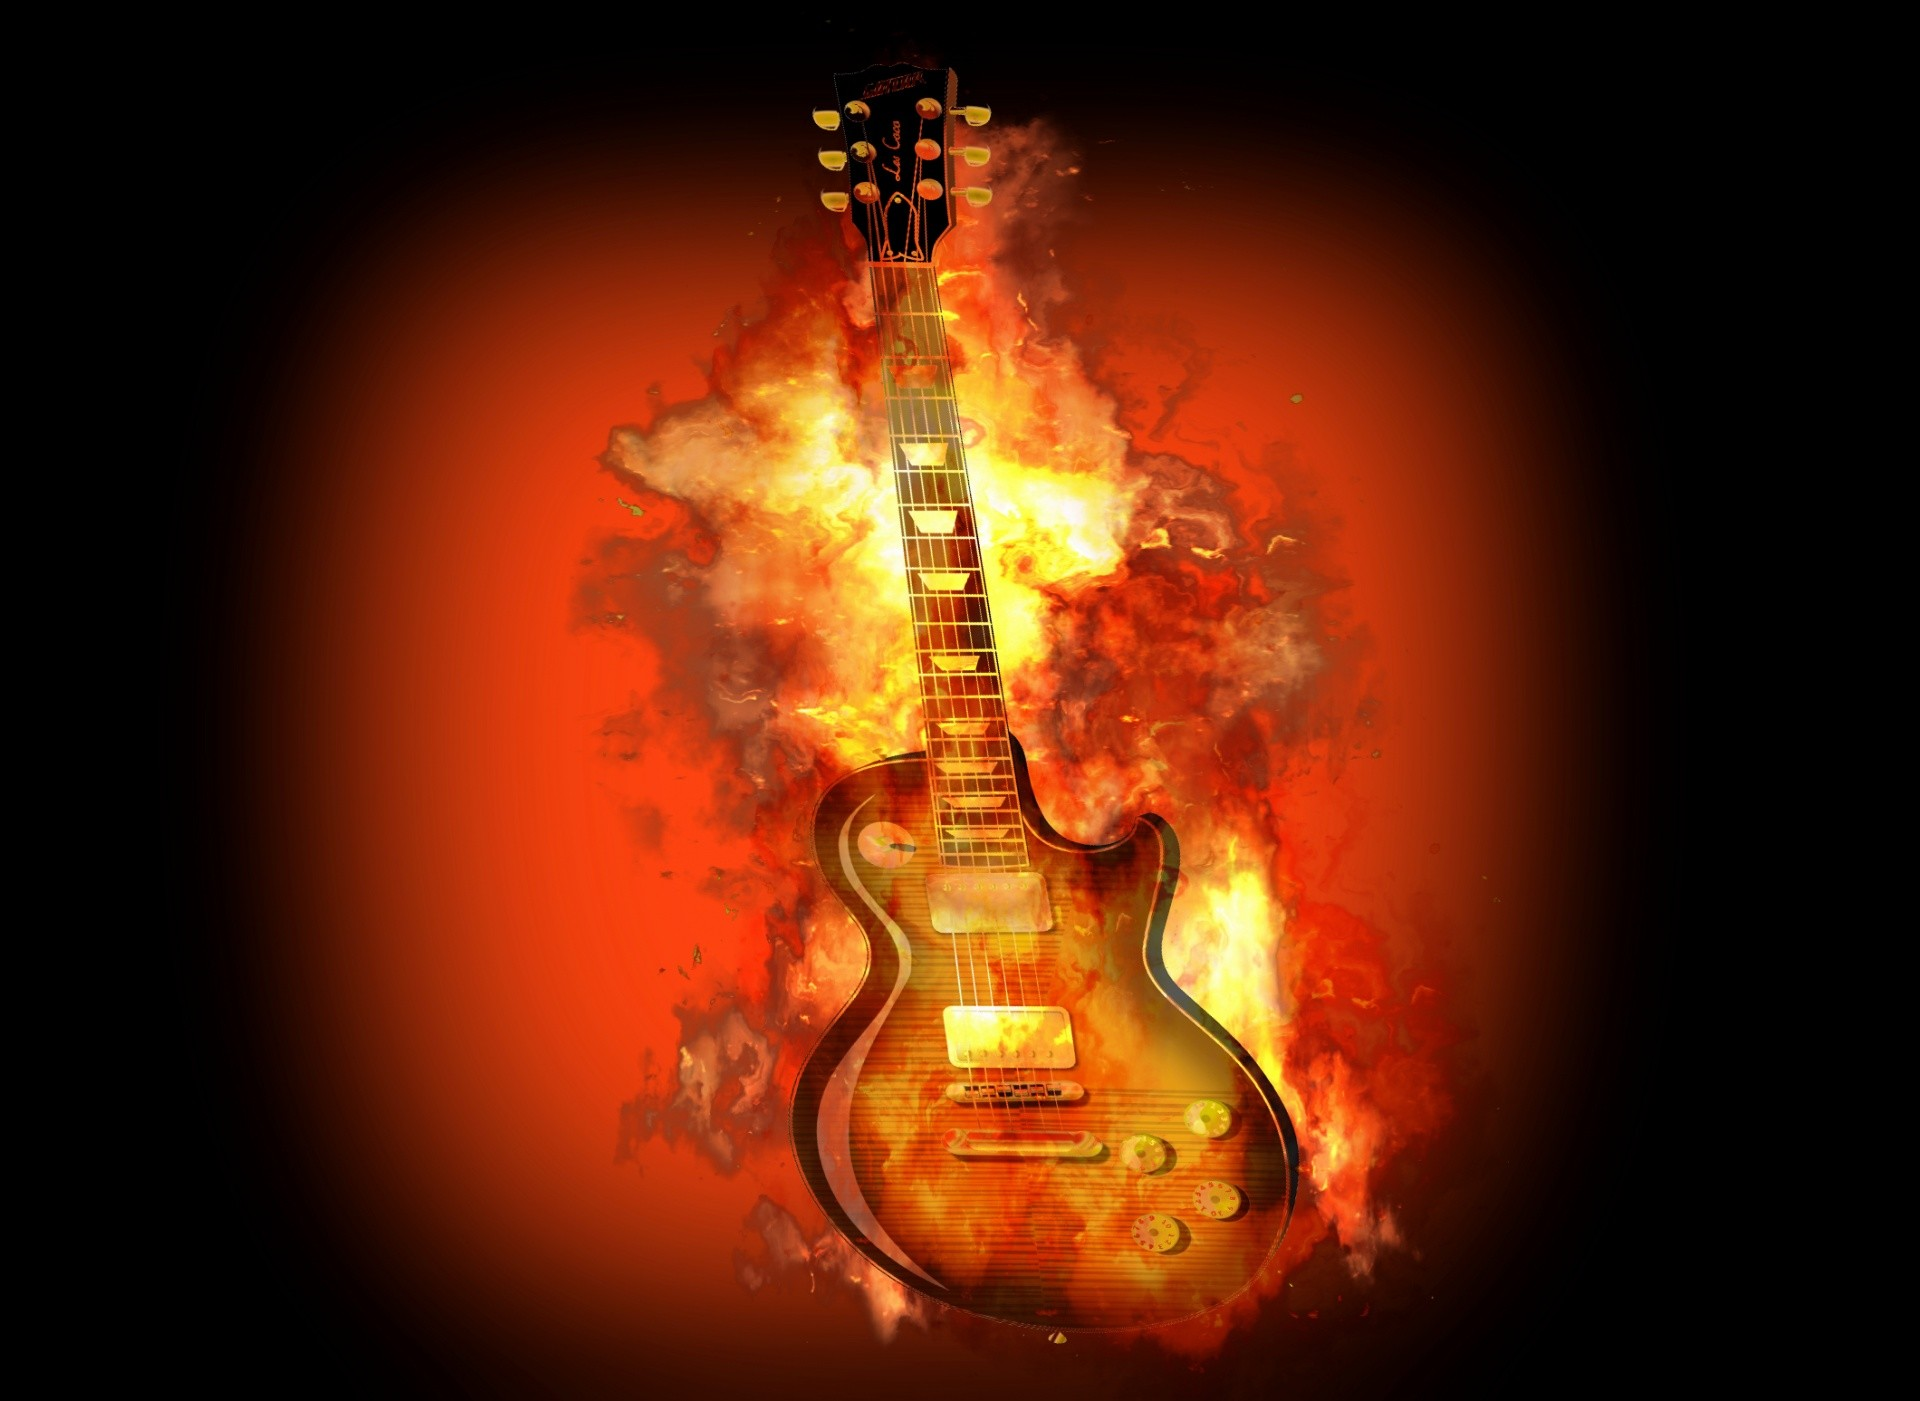 1920x1401 Guitar Fire Flame